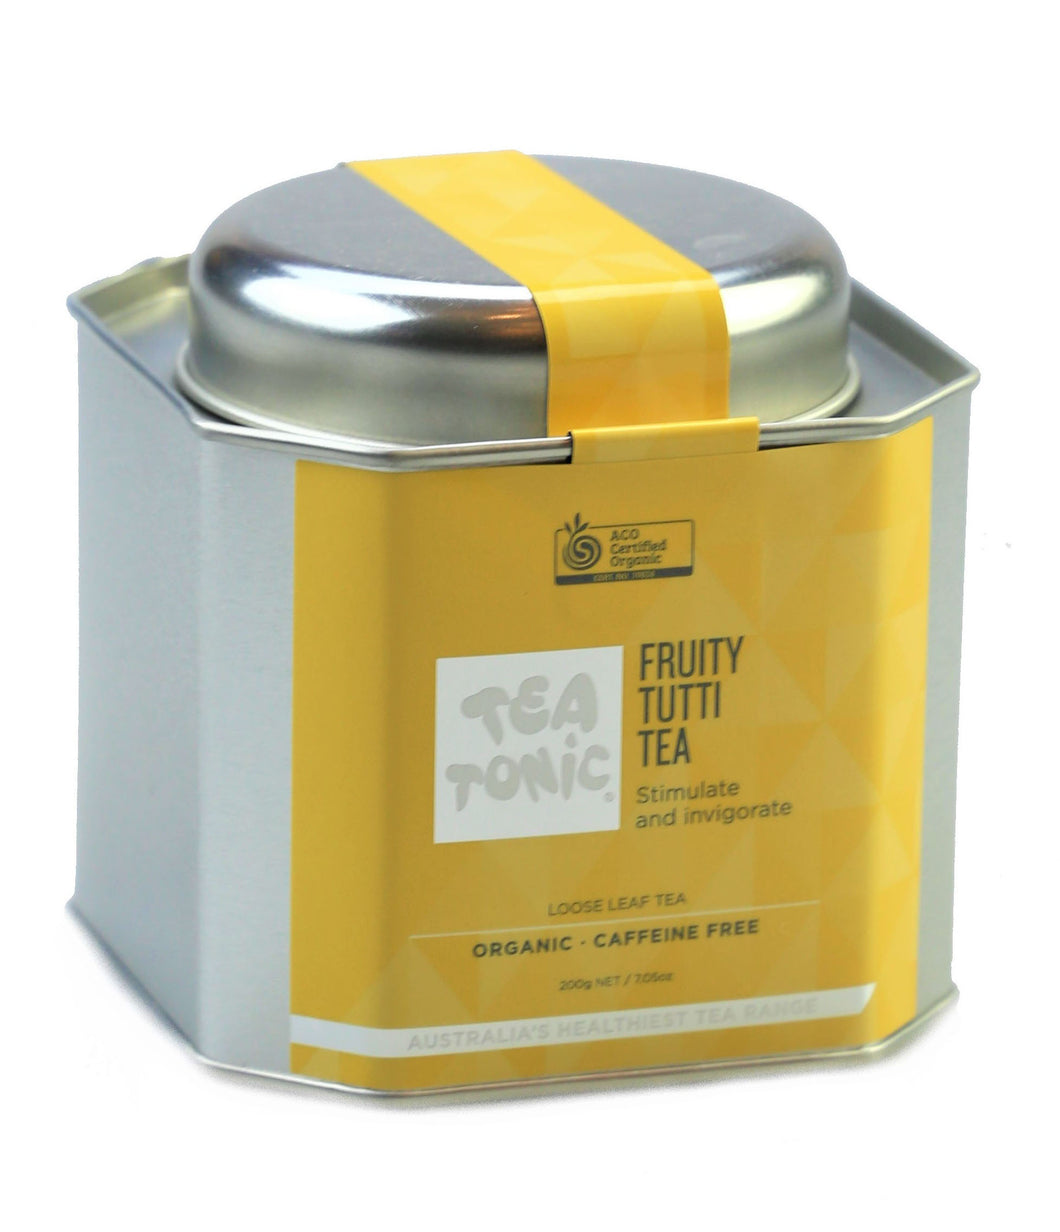 Fruity Tutti Loose Leaf Caddy Tin